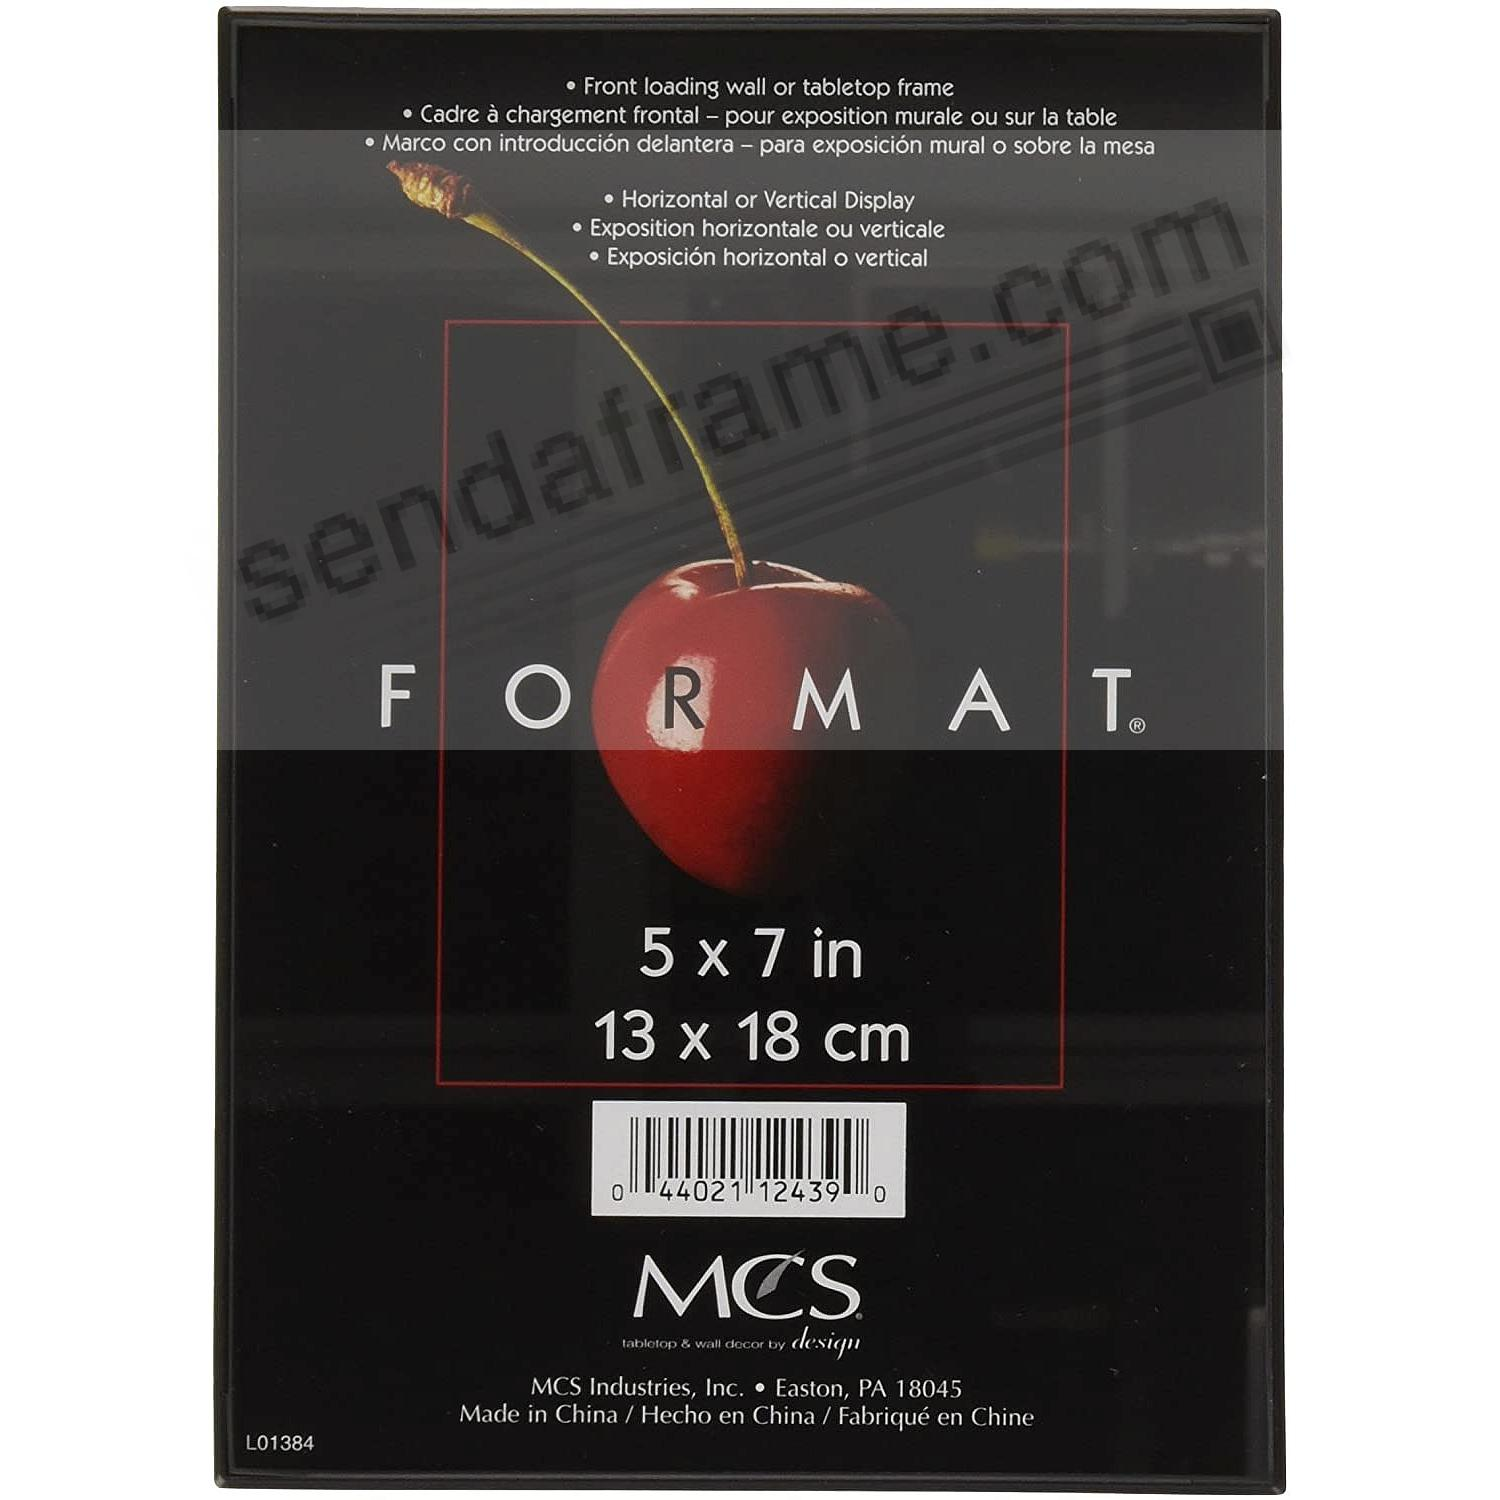 The ORIGINAL FORMAT black ABS document/print frame